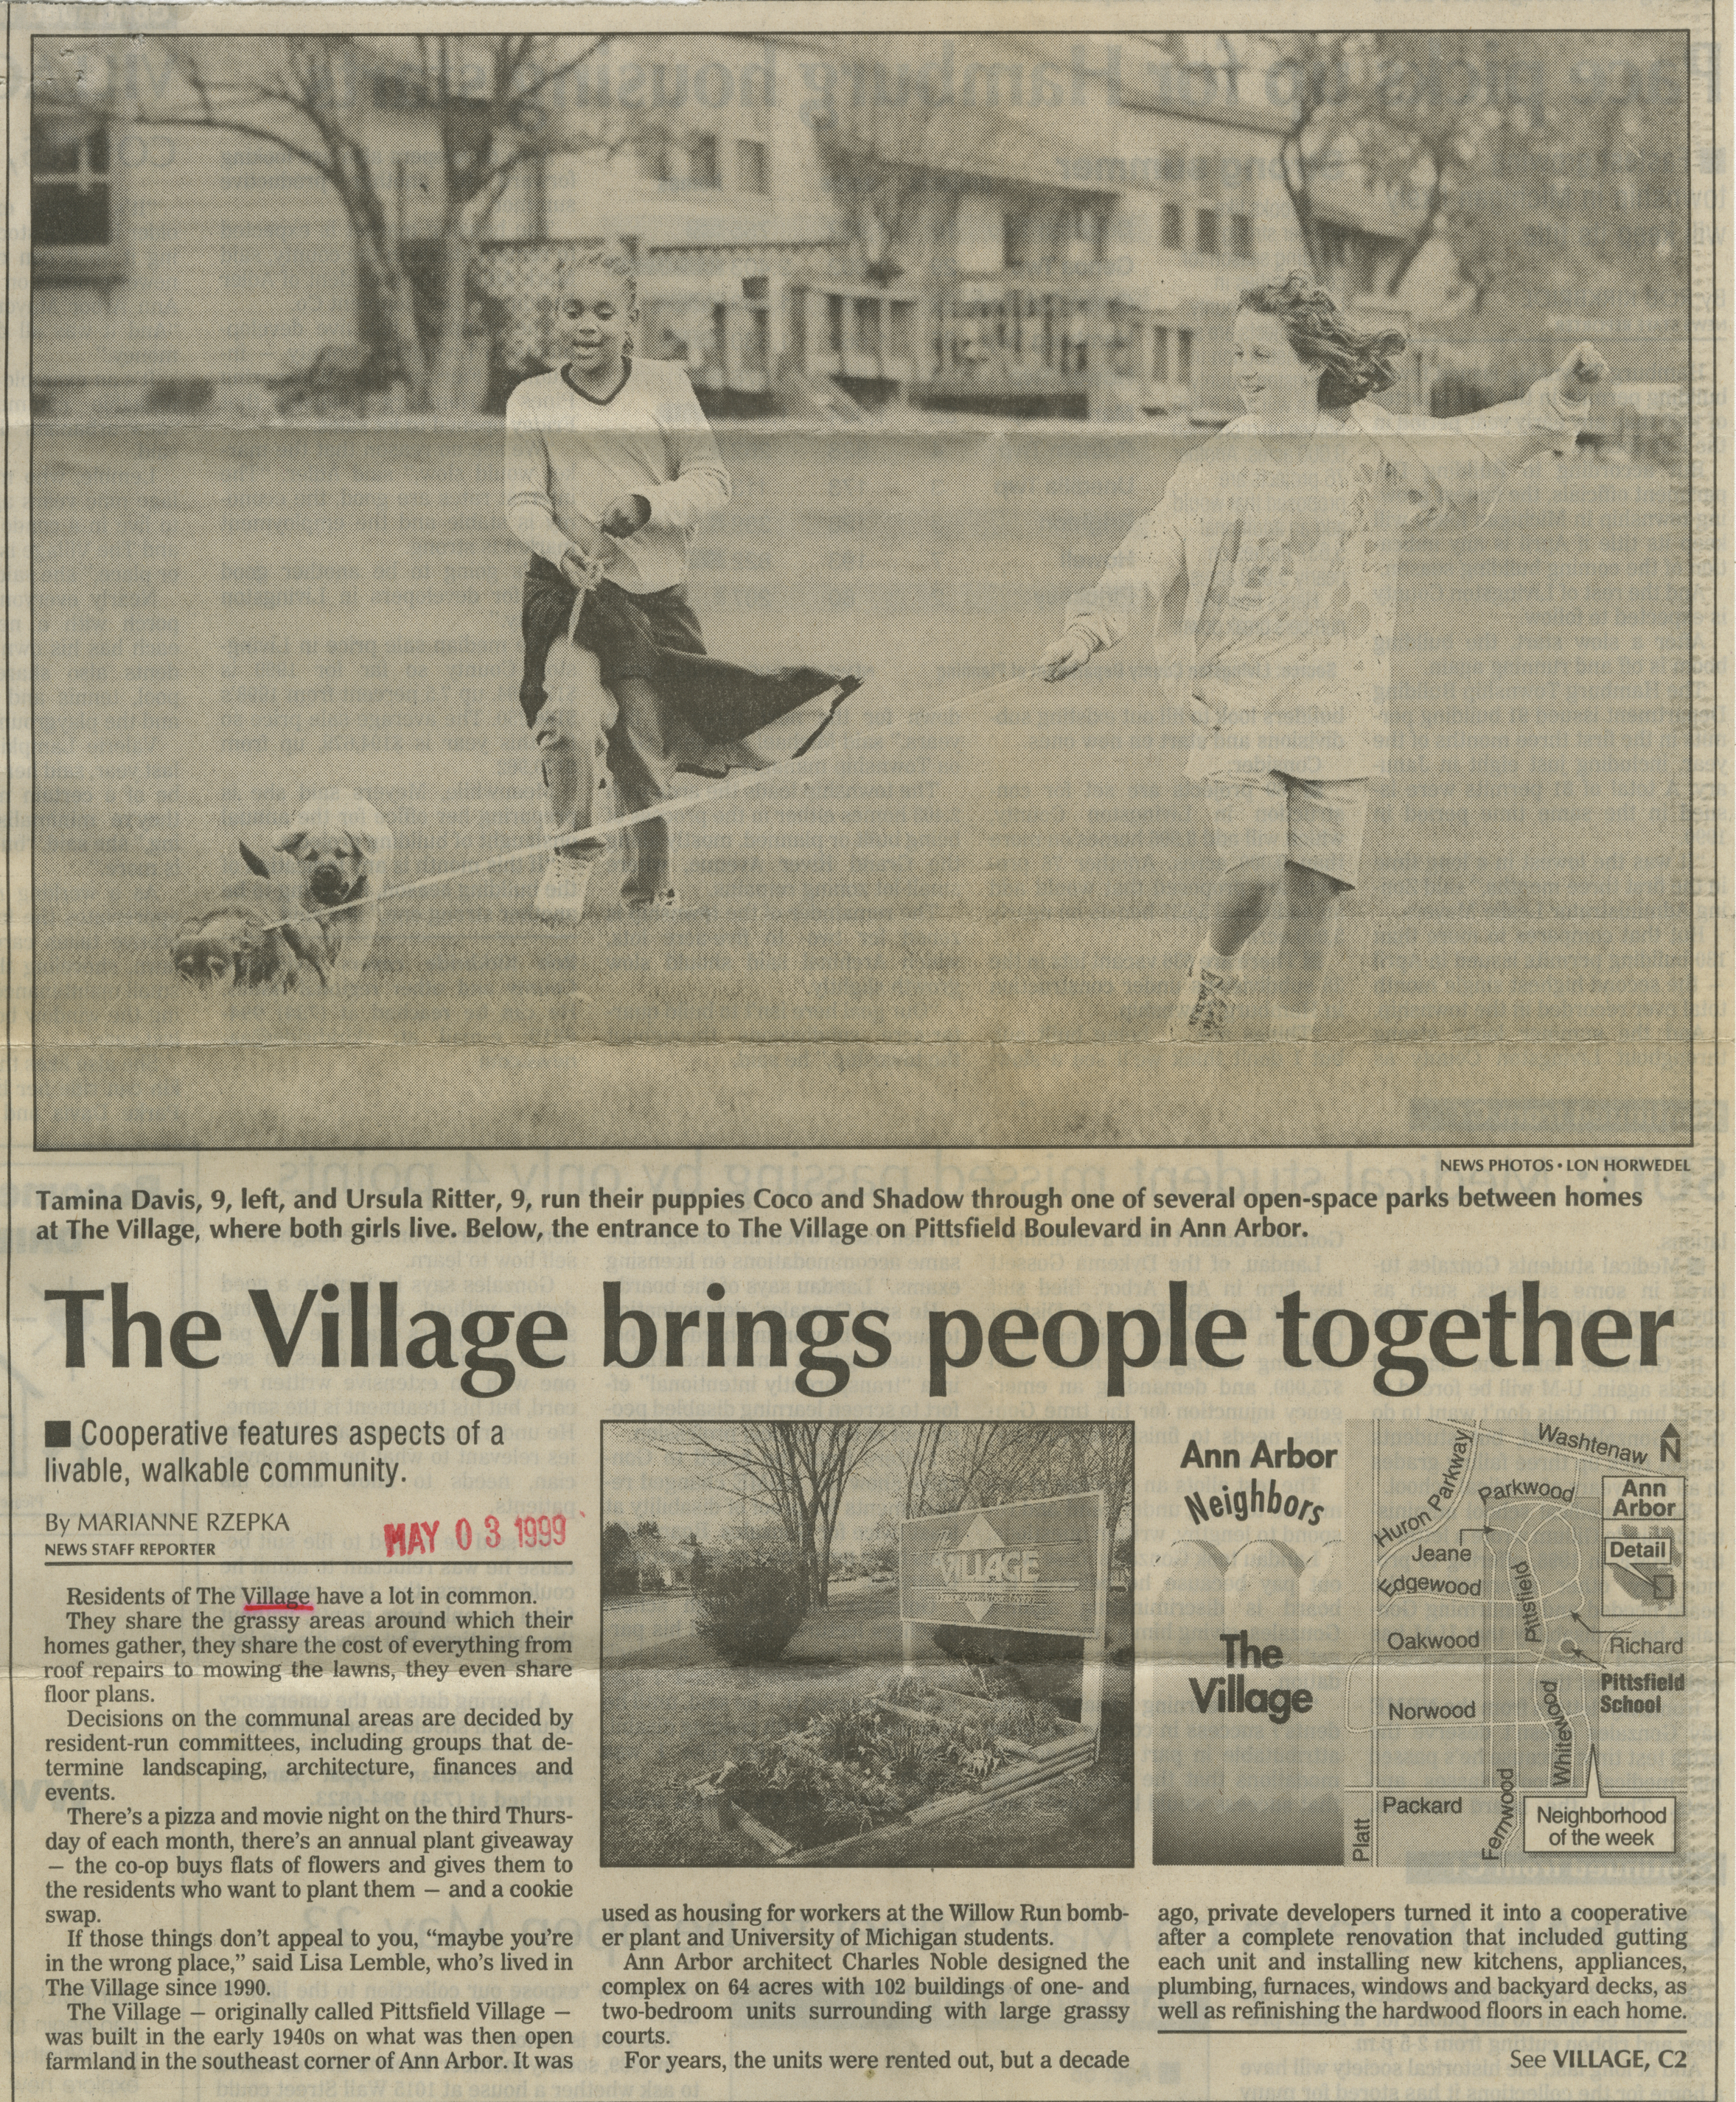 The Village brings people together image